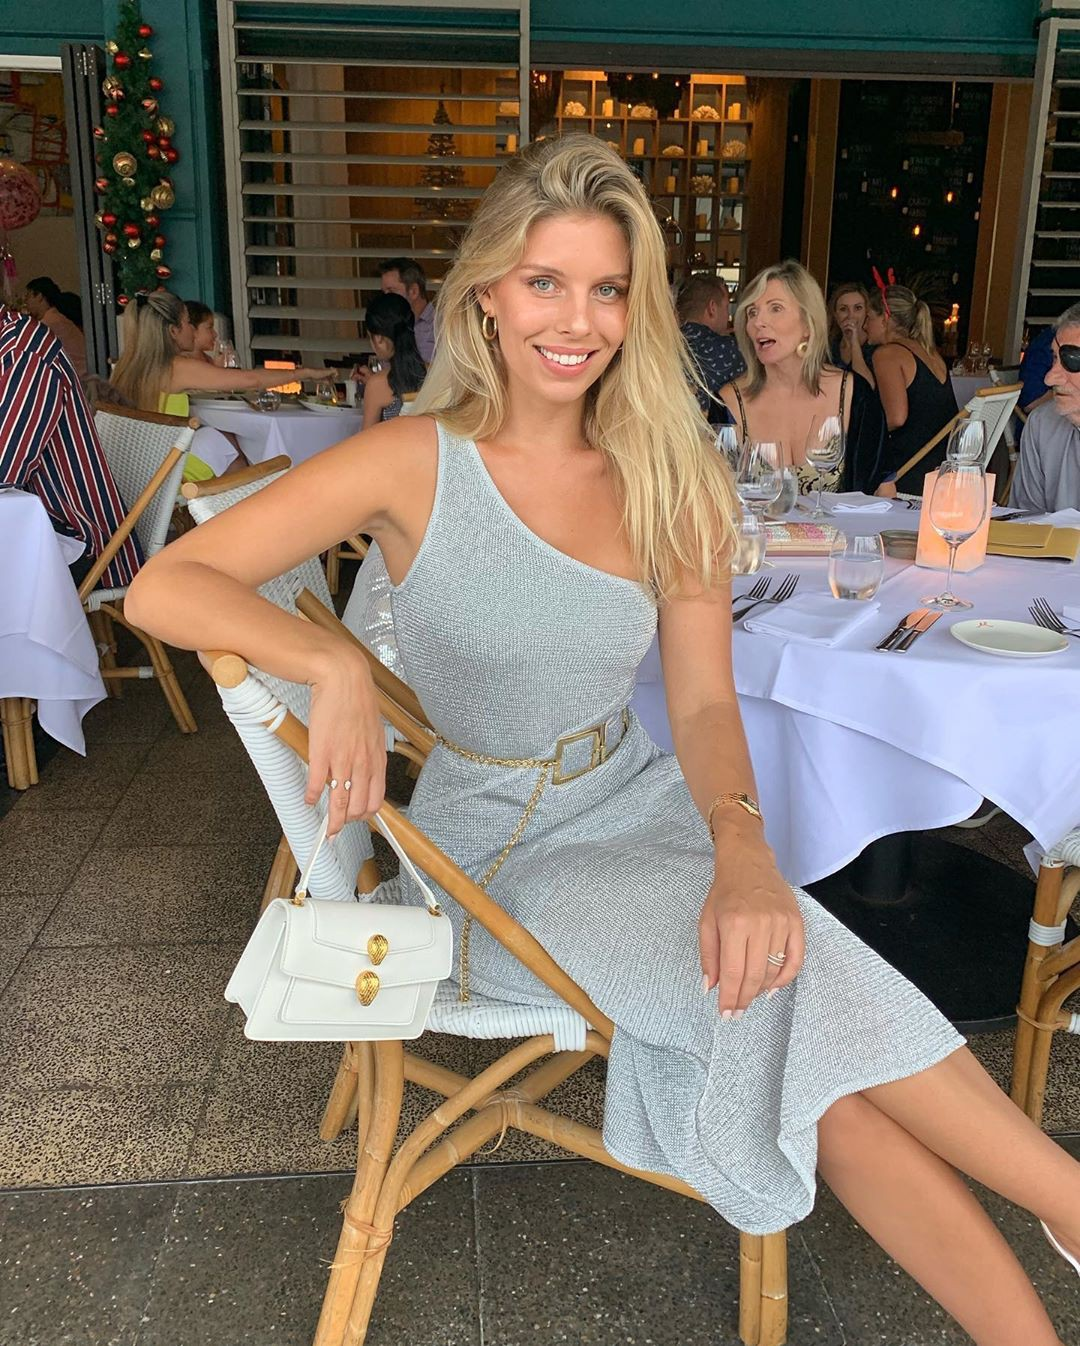 Natasha Oakley dress outfits for women, legs picture, having fun